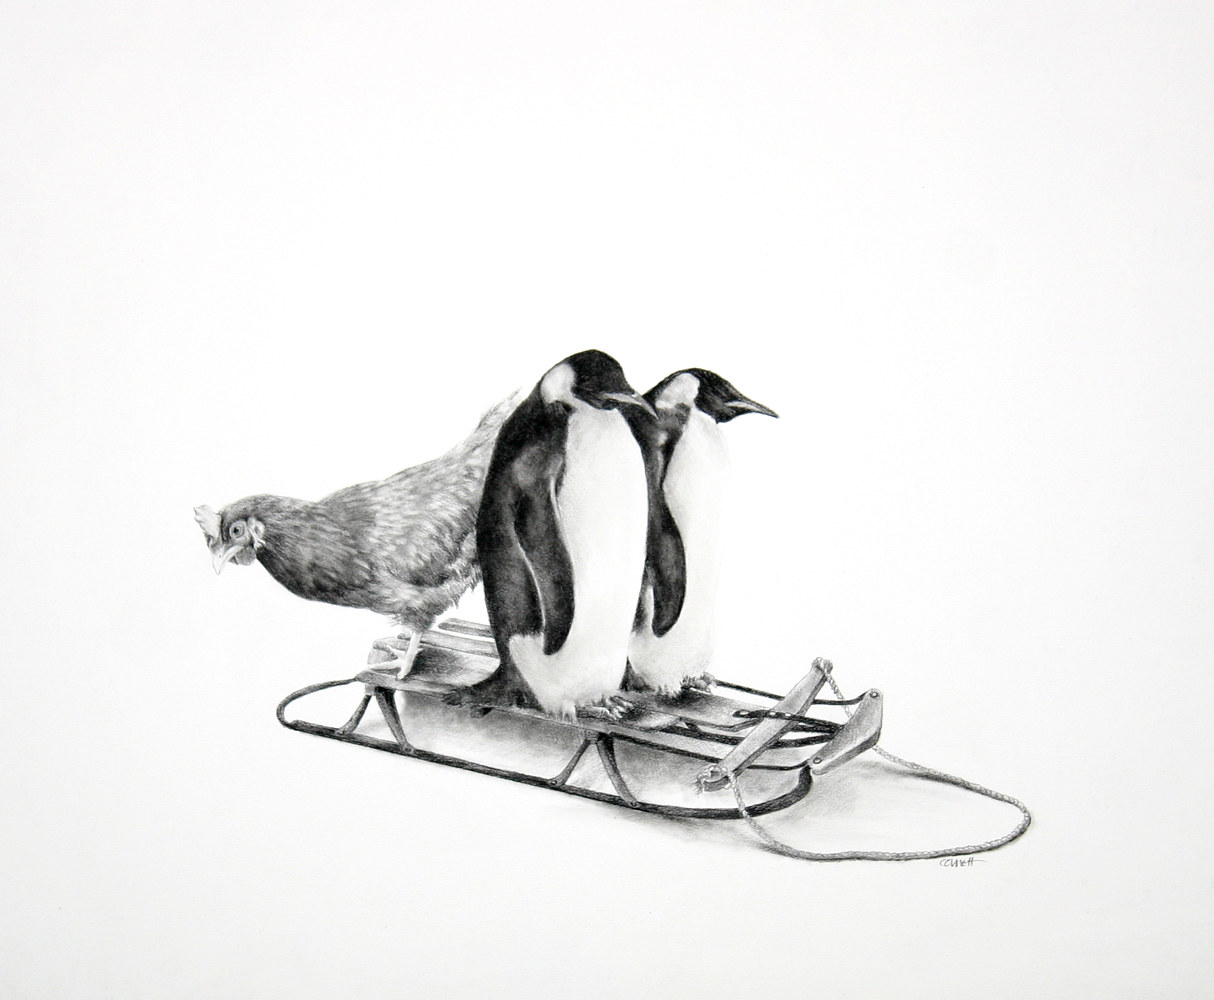 Drawing Three Birds on a Sled by Ellen Cornett